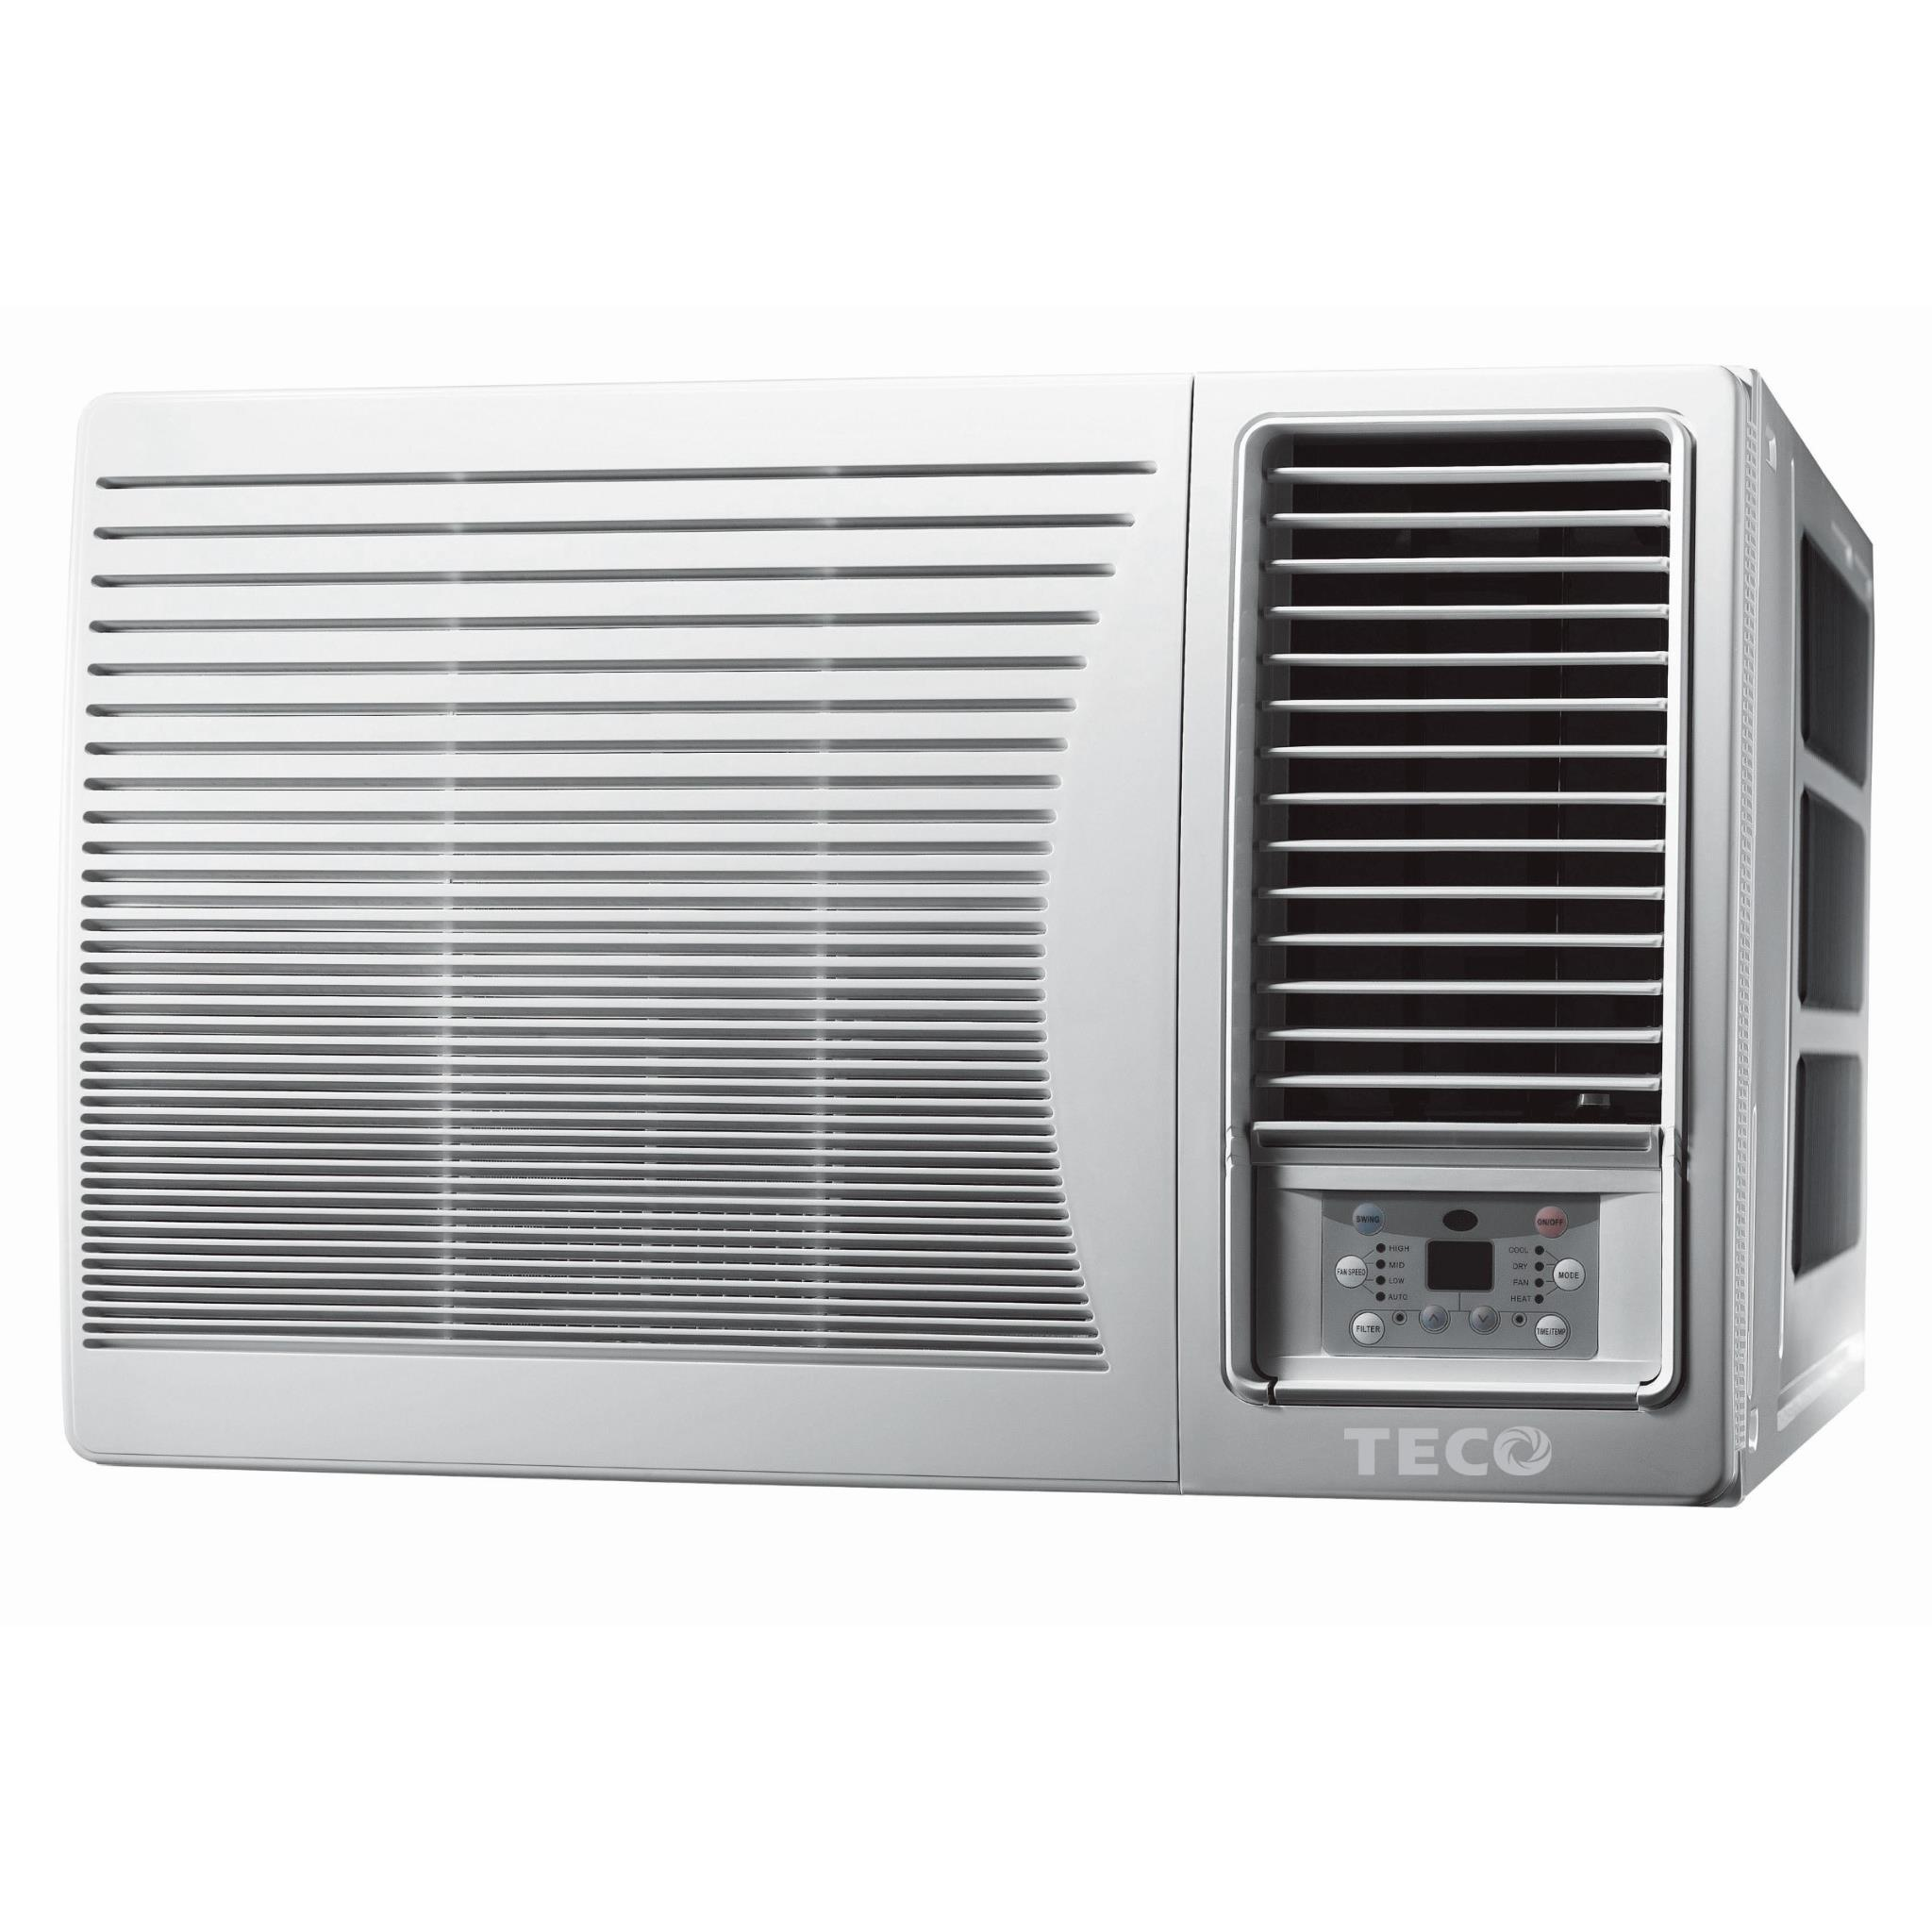 Teco 2.7kW Window/Wall Room Reverse Cycle Air Conditioner